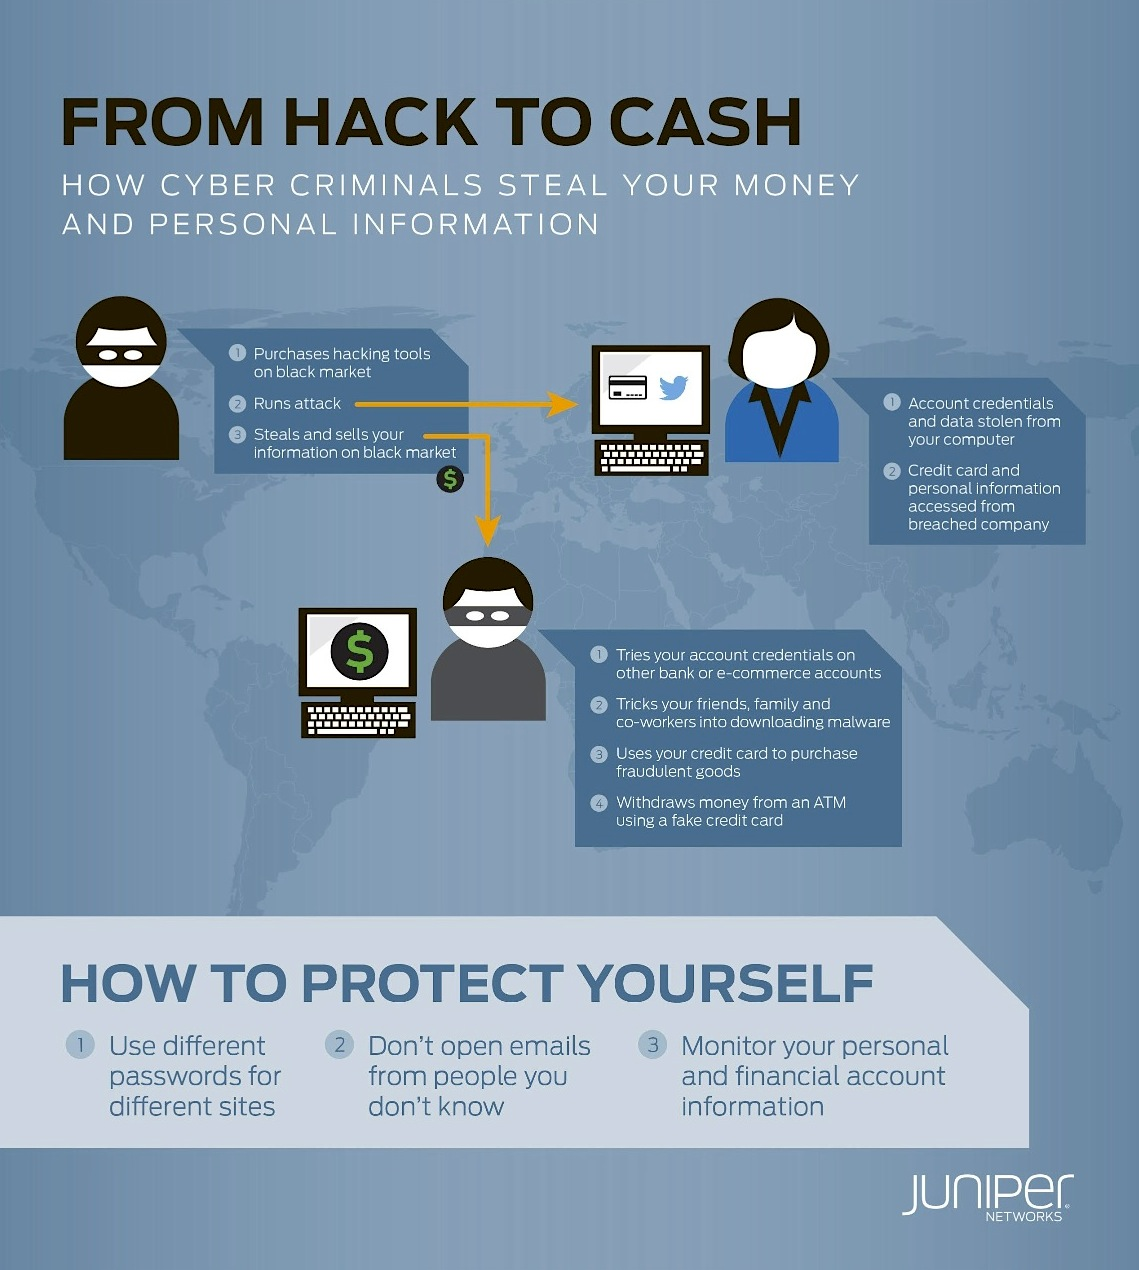 Juniper Hack to Cash